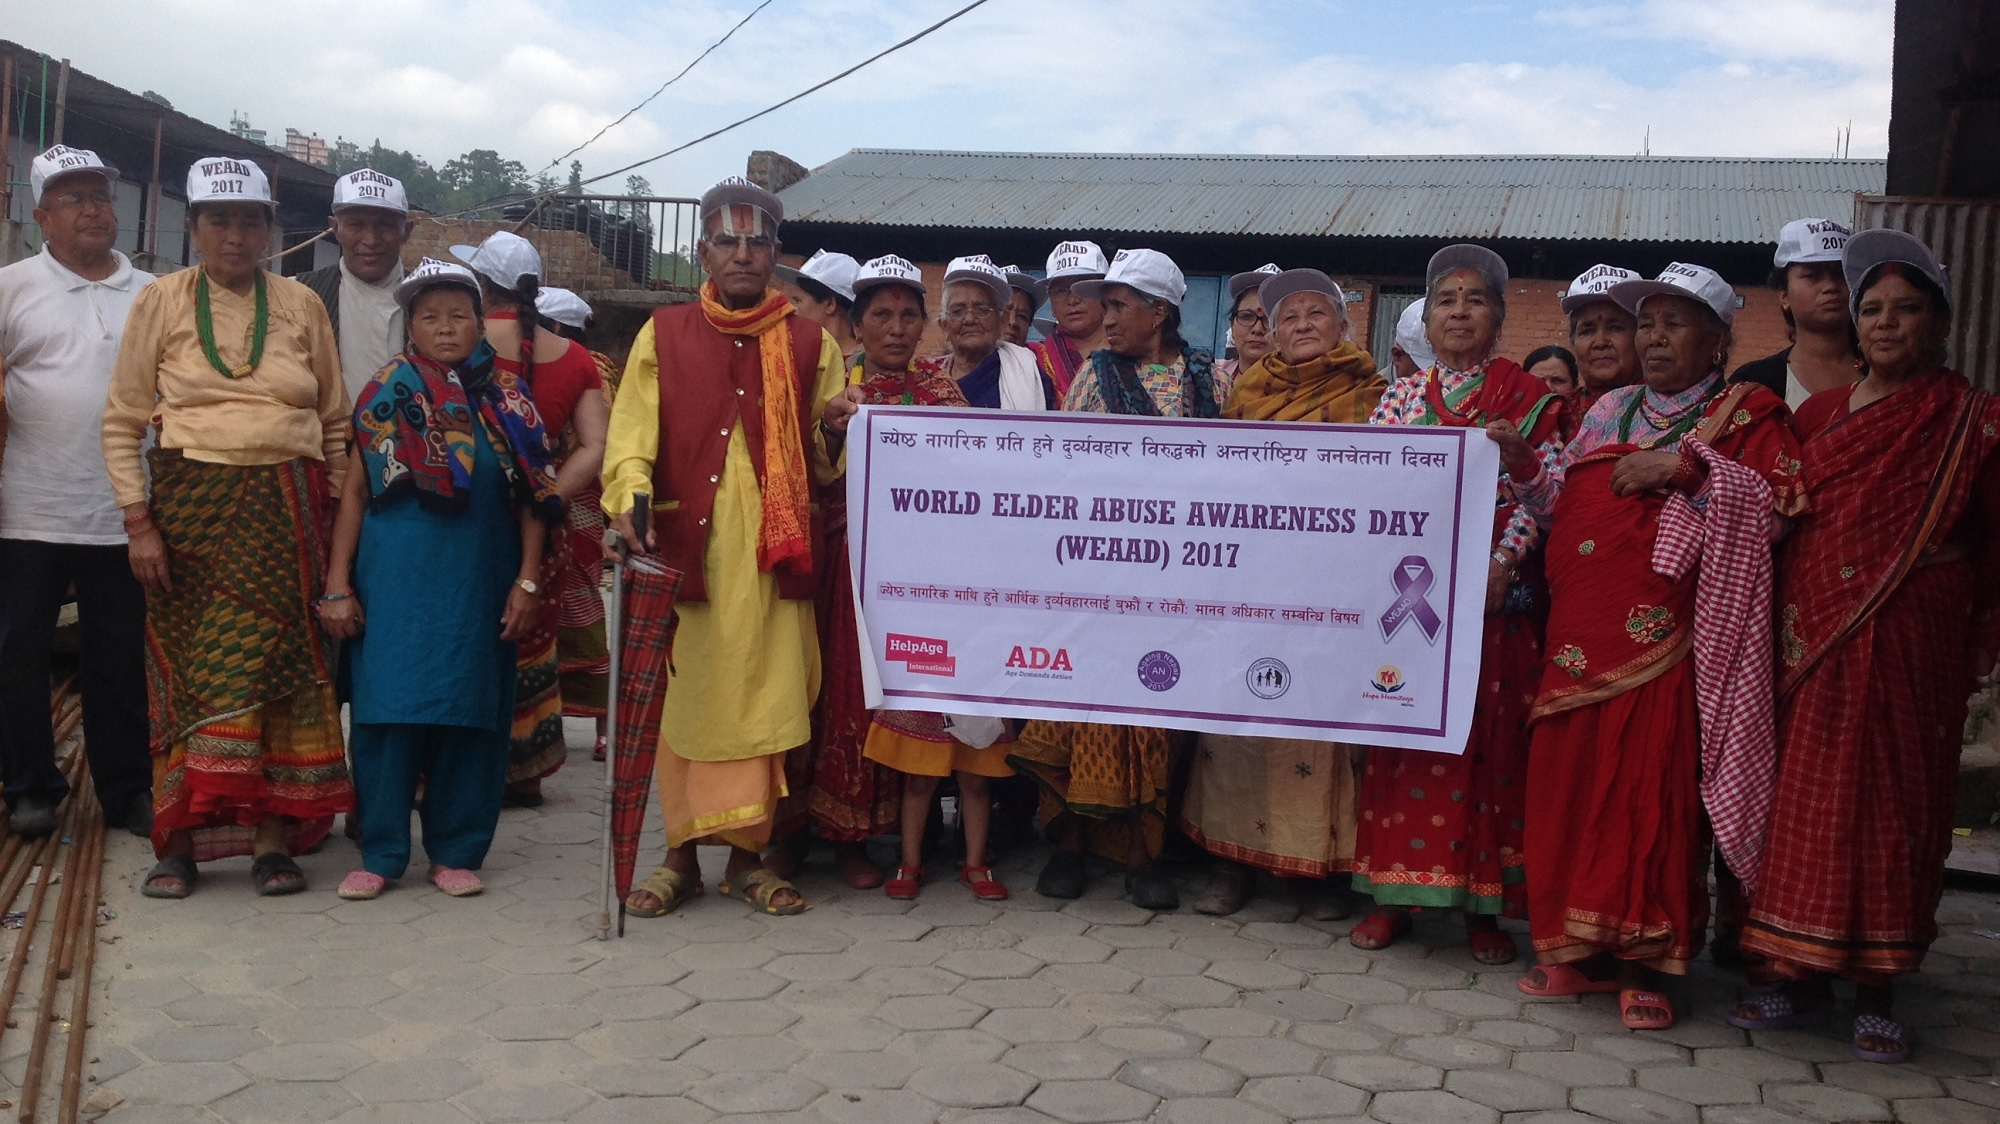 Older people gather for a rally in Nepal on World Elder Abuse Awareness Day 2017